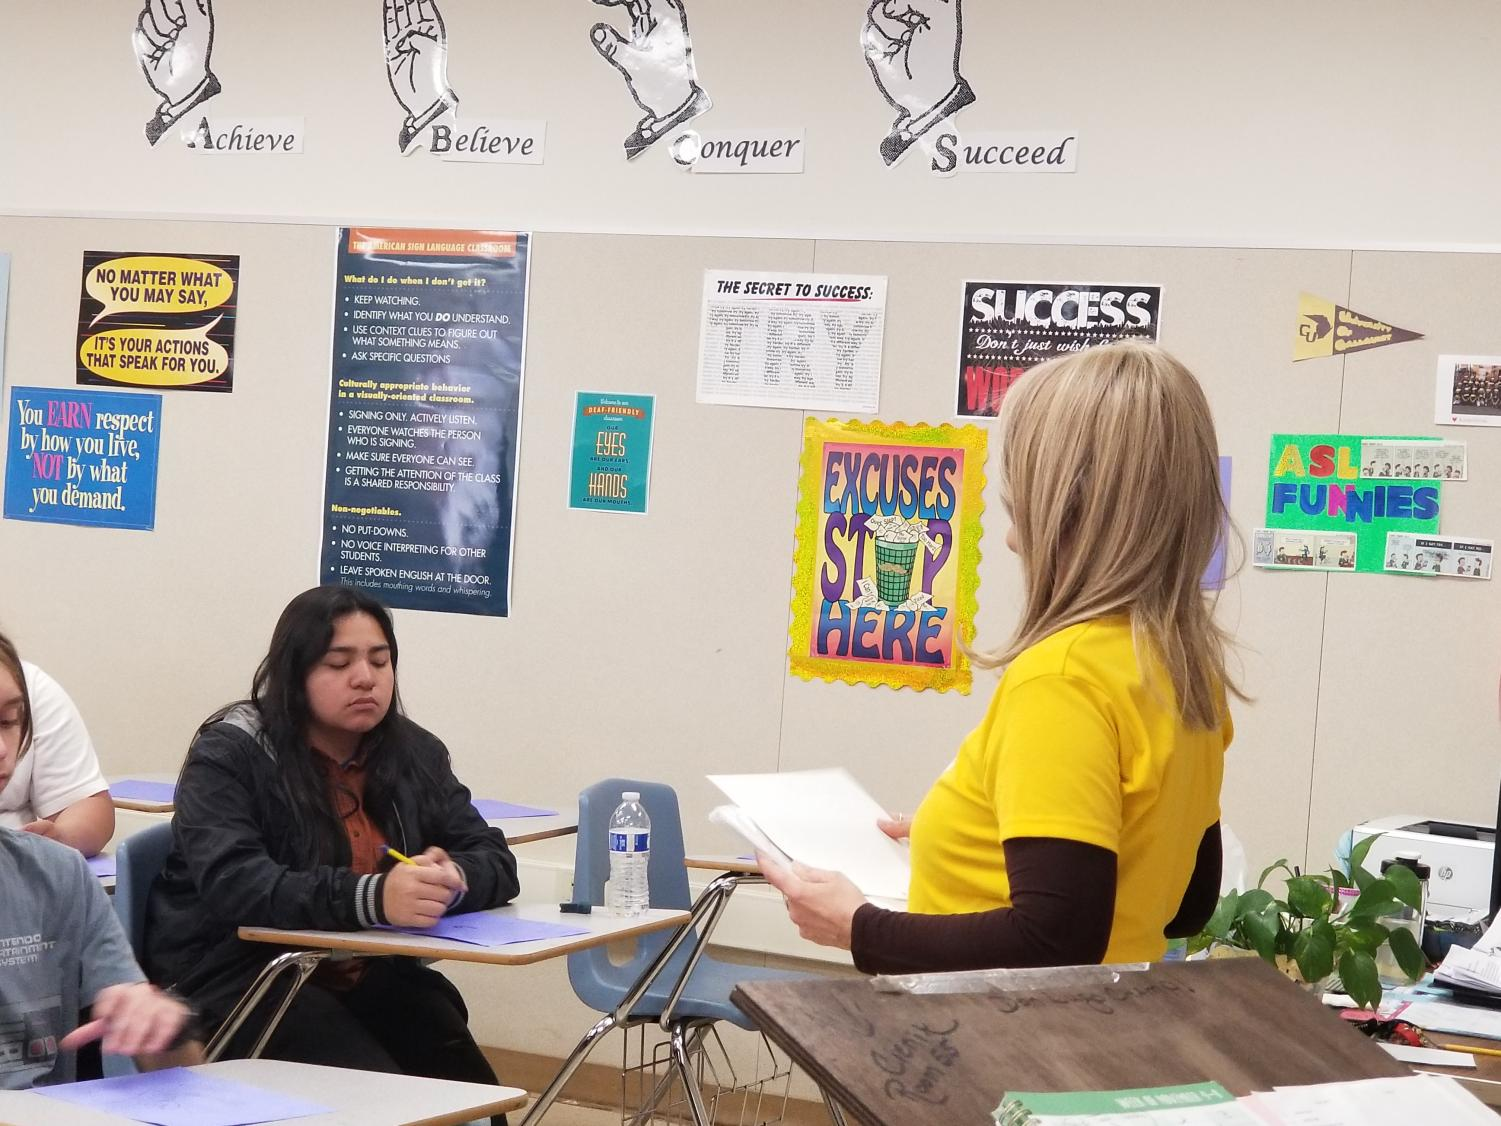 Mrs. Cenik has to constantly stand in the front of the class so that her students can easily see her signs.